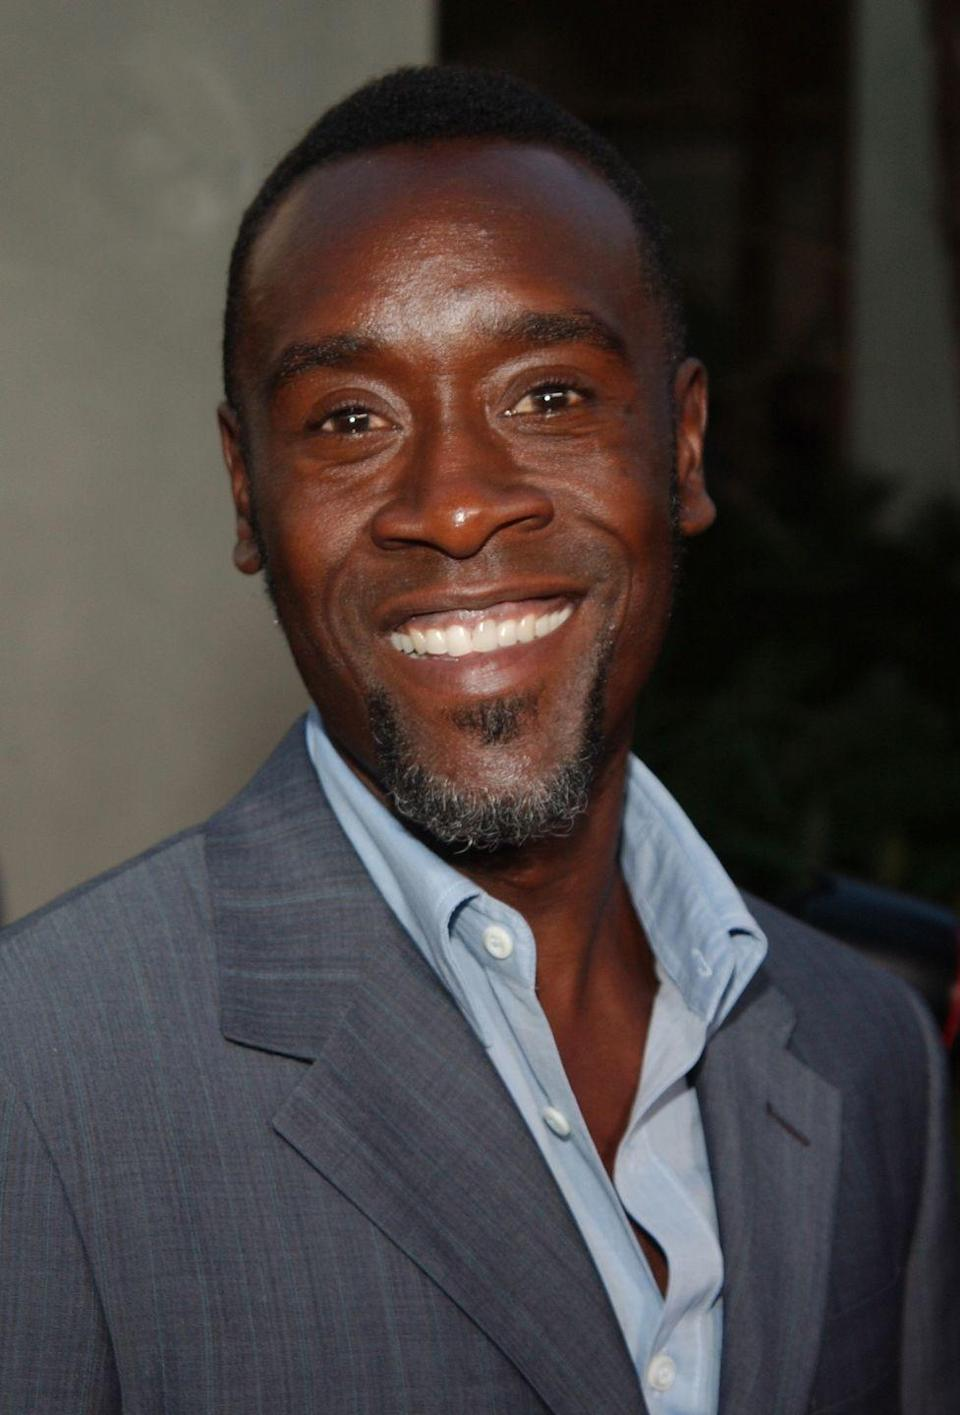 <p>Don Cheadle rightfully makes this list after delivering two acclaimed performances in 2004, in <em>Crash</em> and <em>Hotel Rwanda.</em> His performance in the latter film even earned the actor an Academy Award nomination. </p>